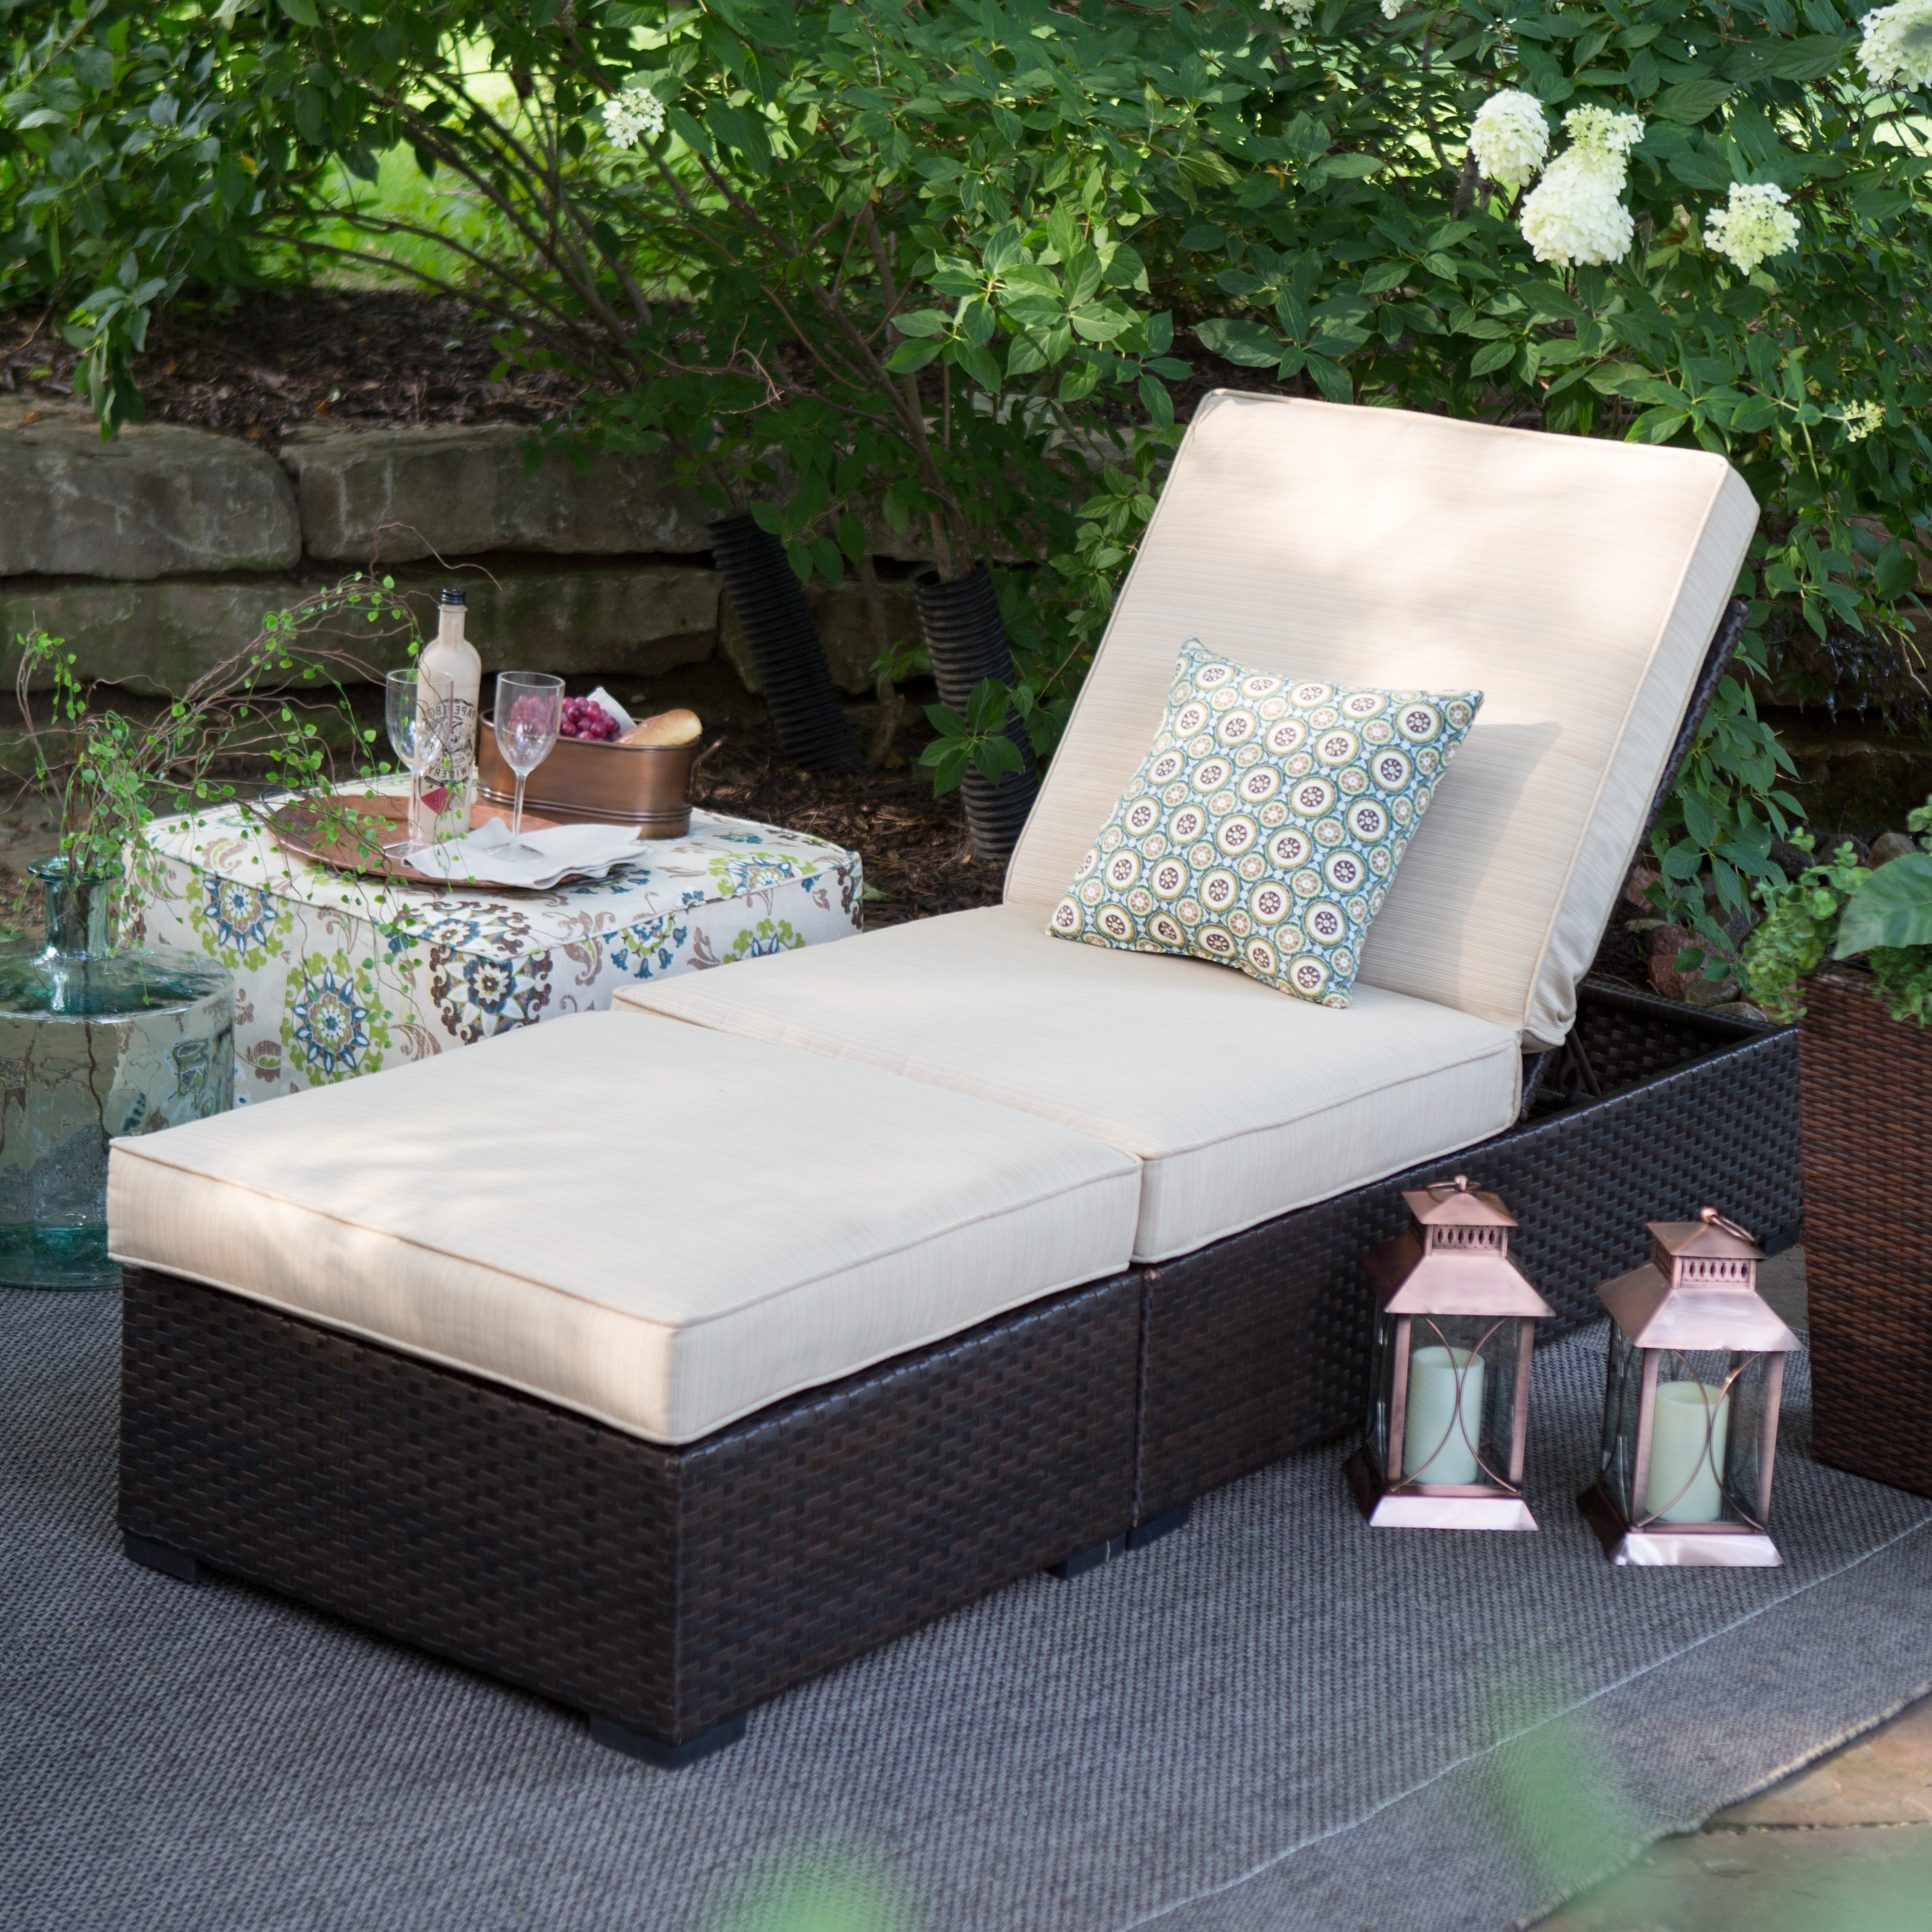 Wicker Chaise Lounge Chairs With Favorite Belham Living Marcella Wide Wicker Chaise Lounge With Ottoman (View 8 of 15)